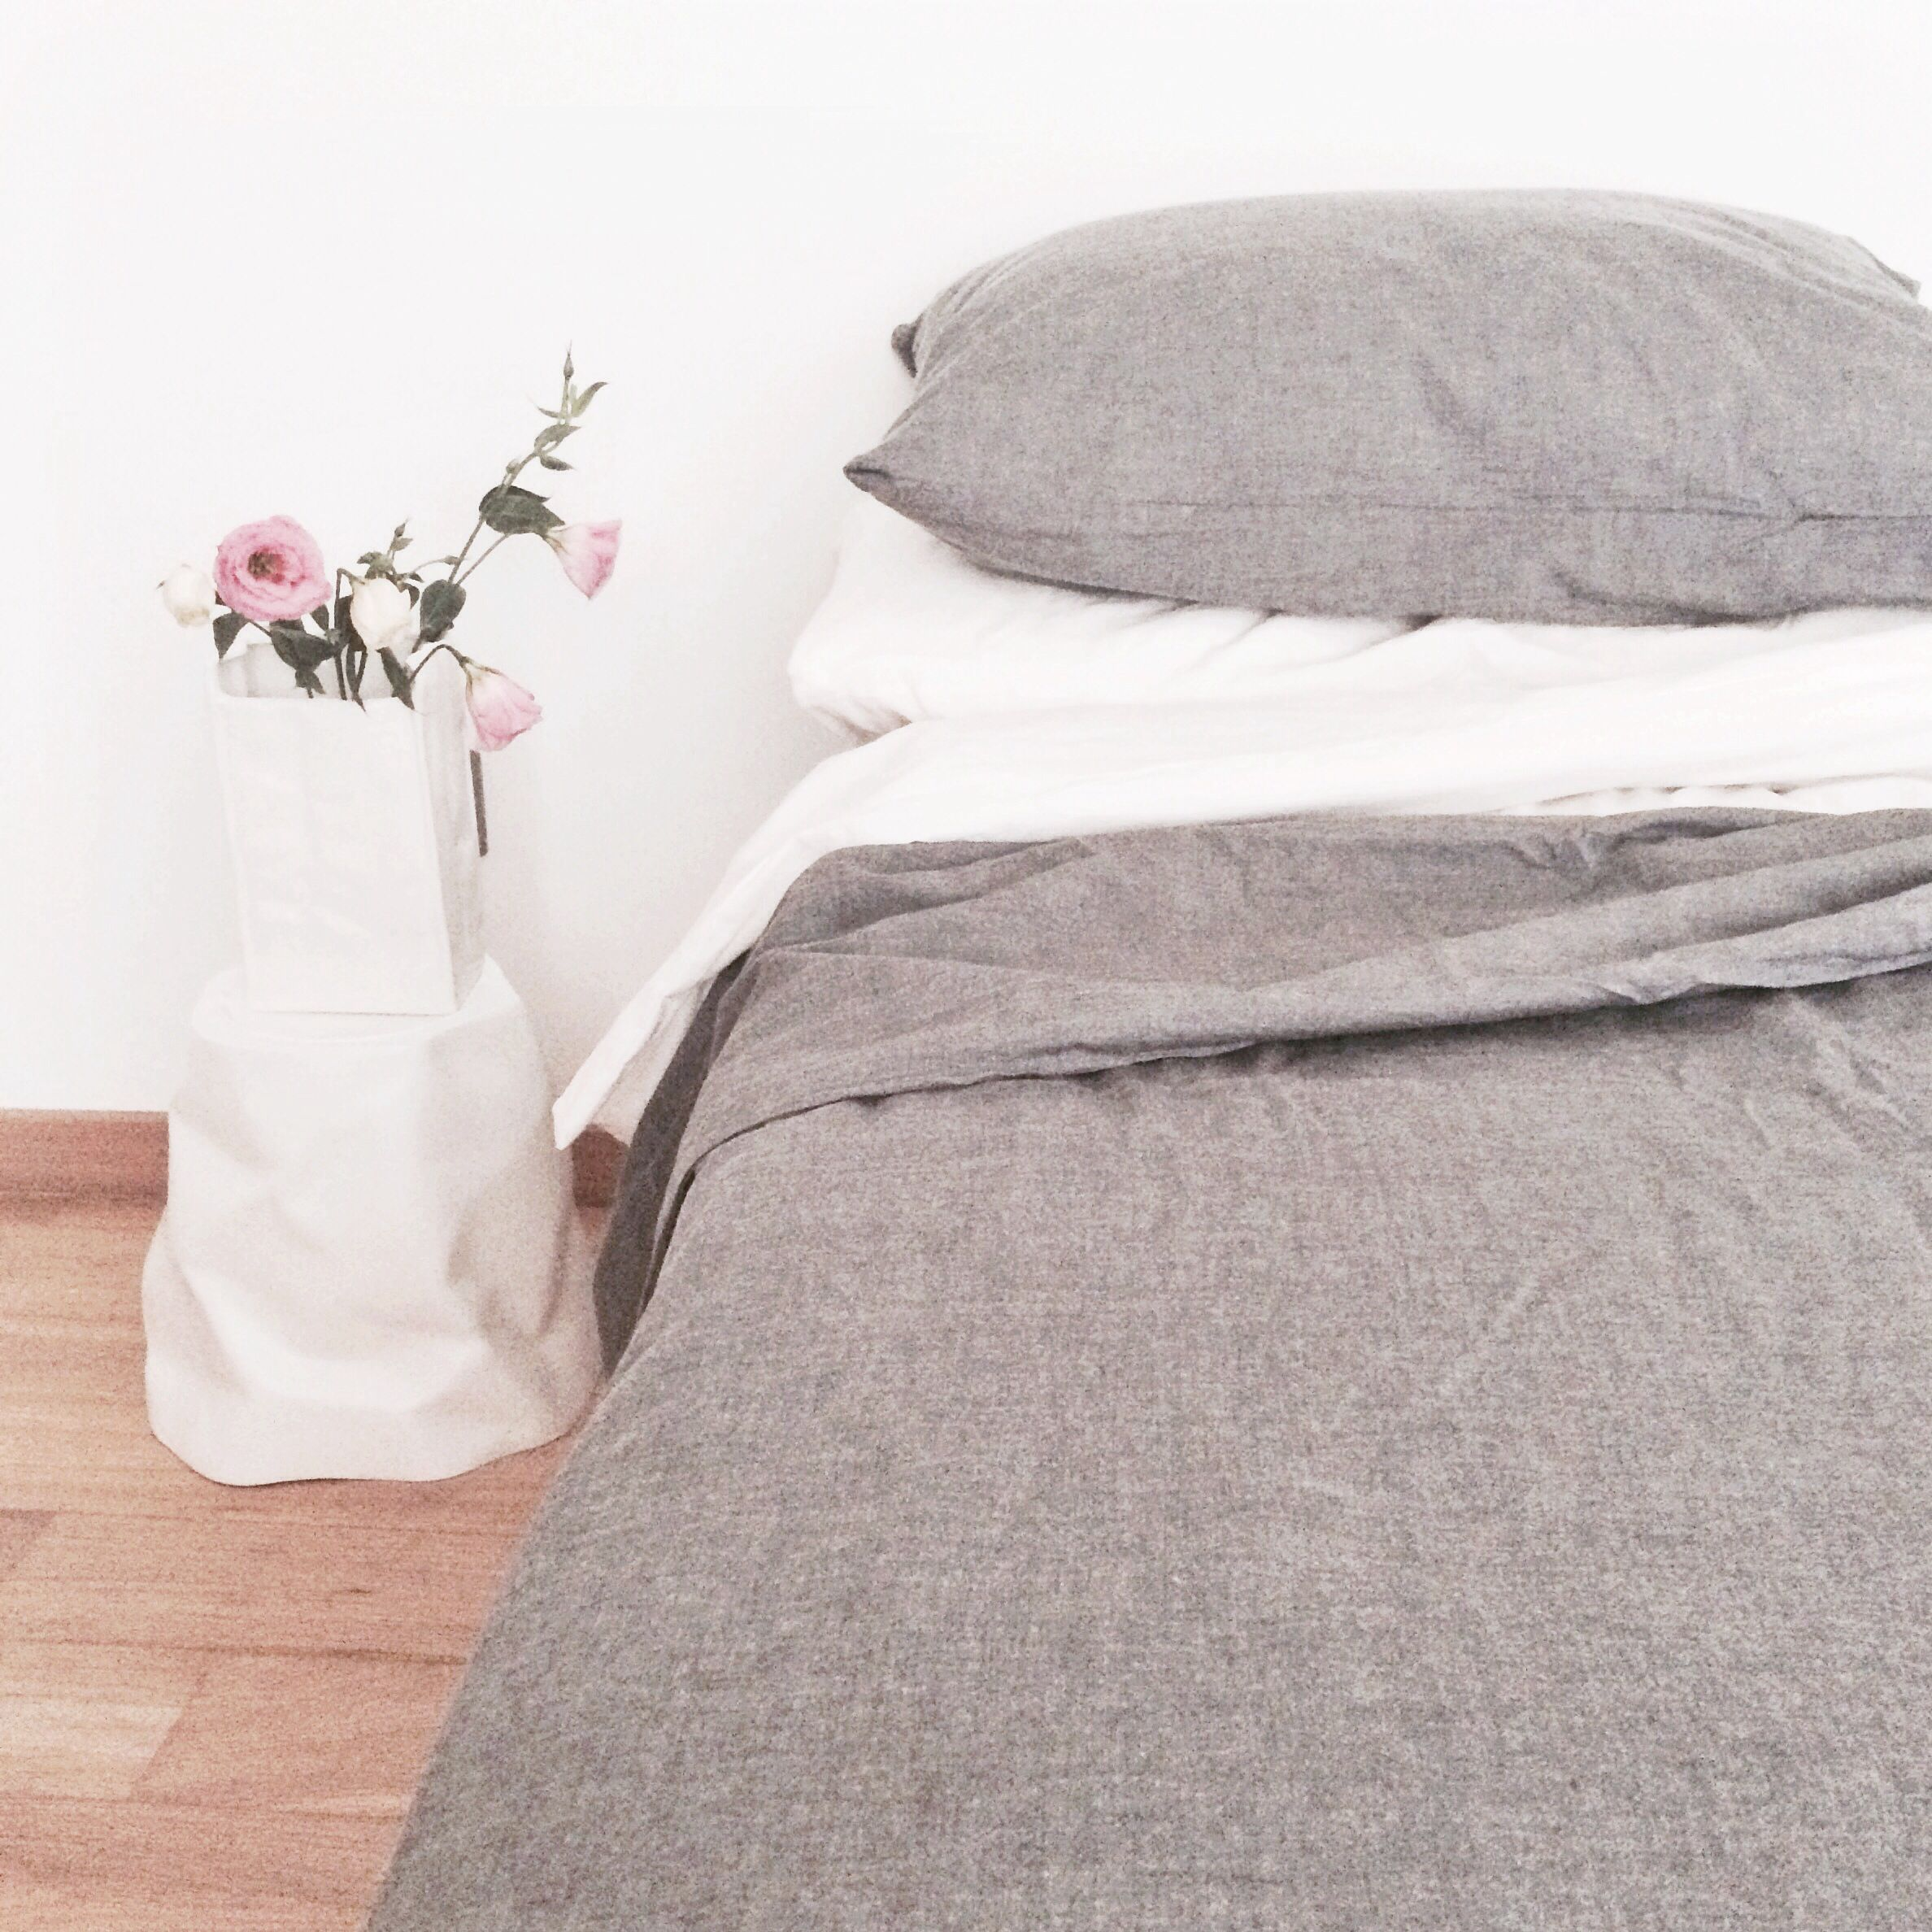 Muji Bed Sheets Muji Bed Linen Grey And White Bedding Via The Asf Affordable